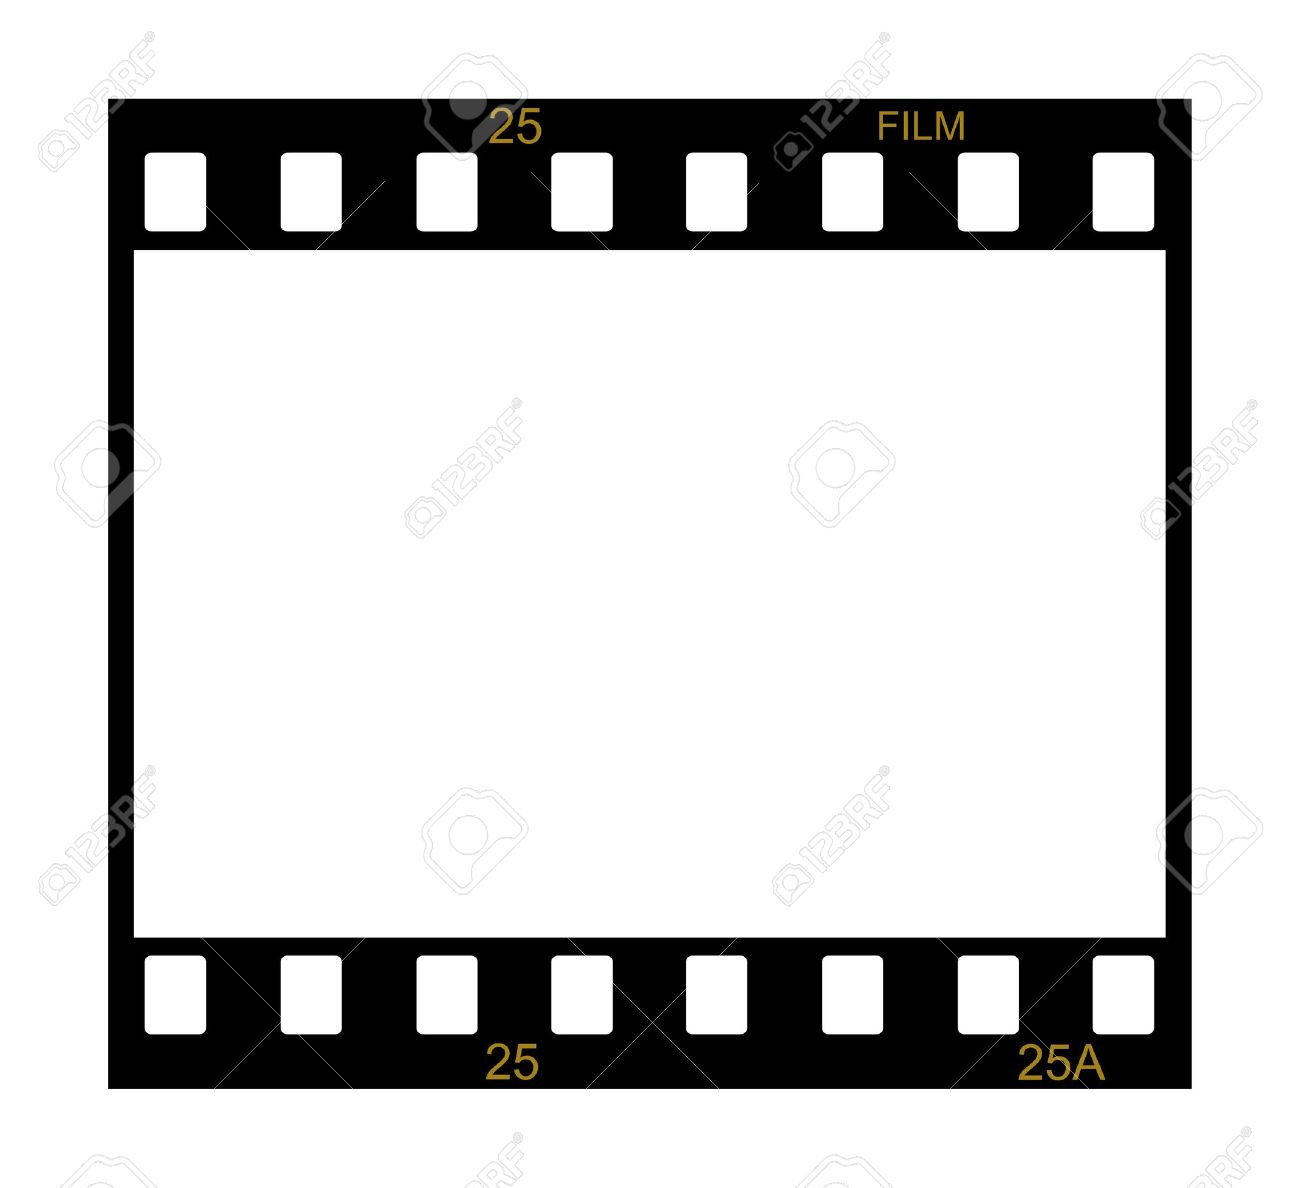 Blank Slide Film Frame On White Background Stock Photo, Picture And ...